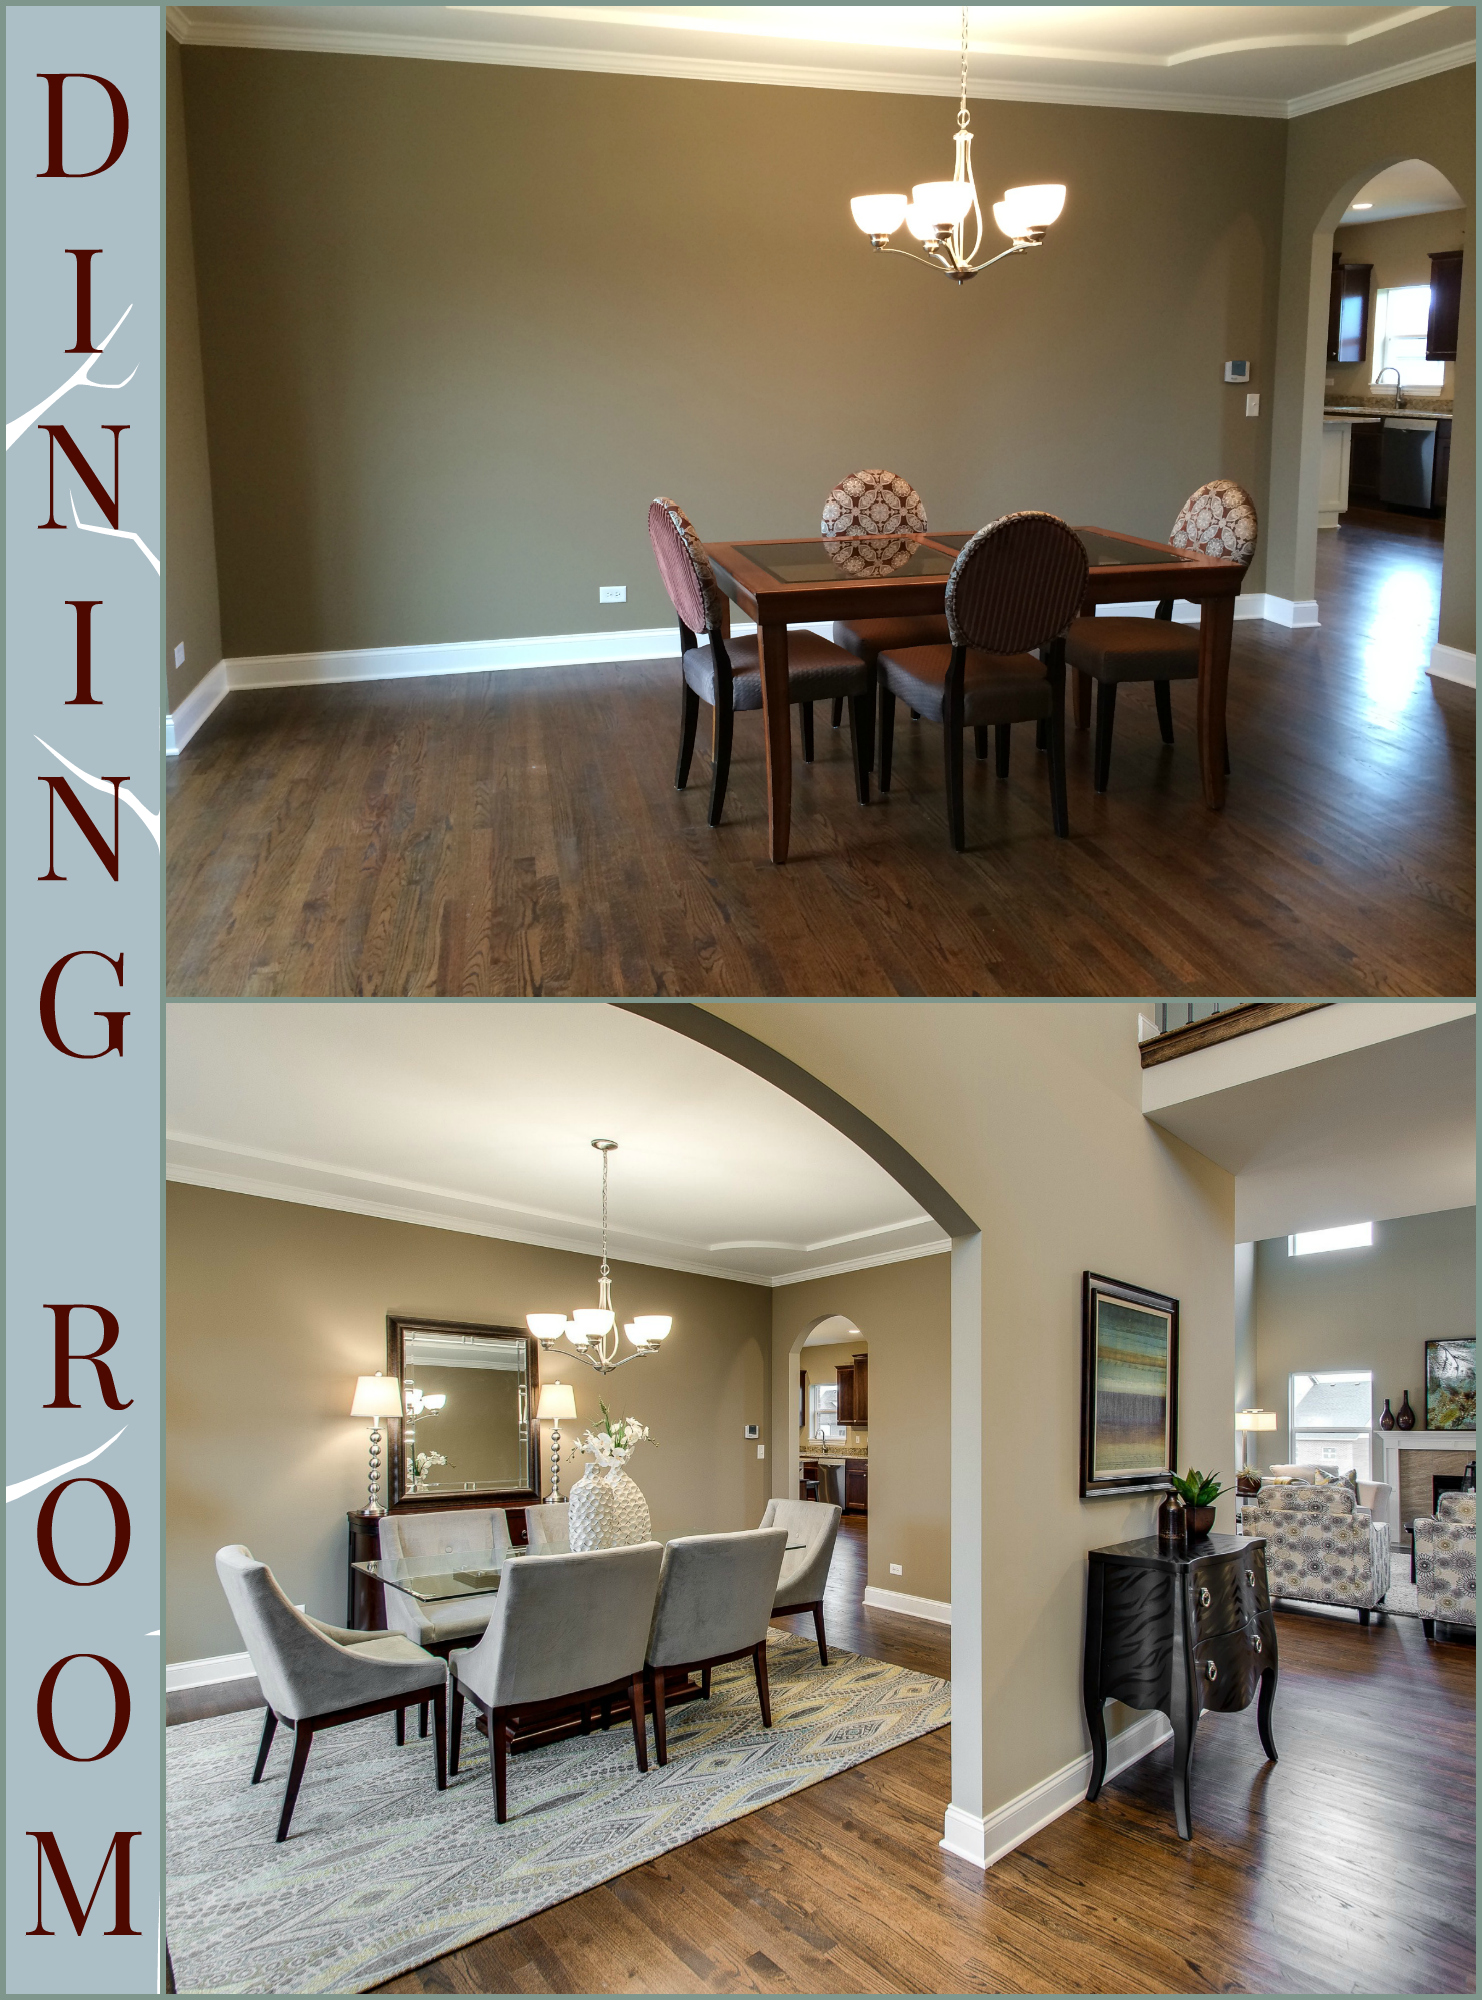 Fast Home Staging Success in Lemont IL